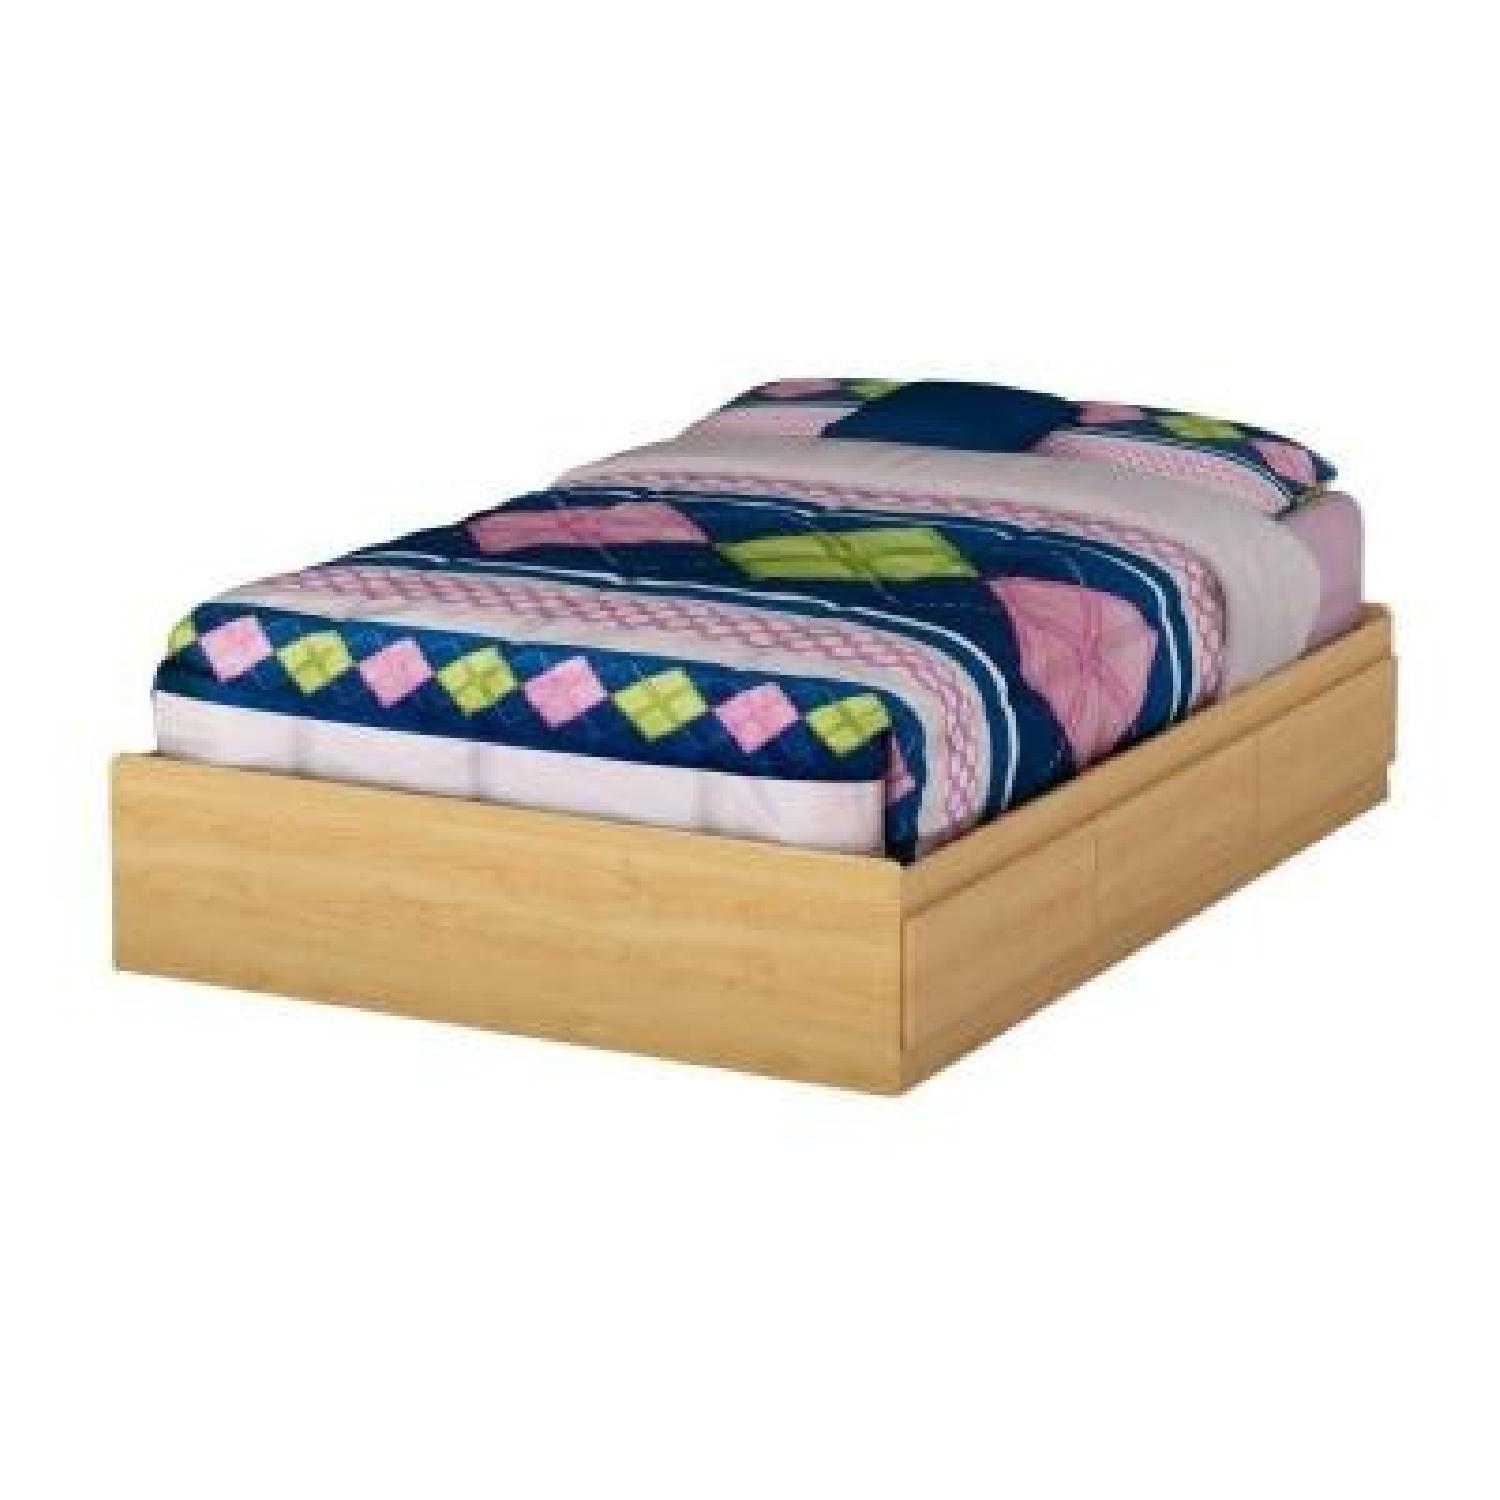 South Shore Furniture Full-Size Storage Bed in Natural Maple - image-0